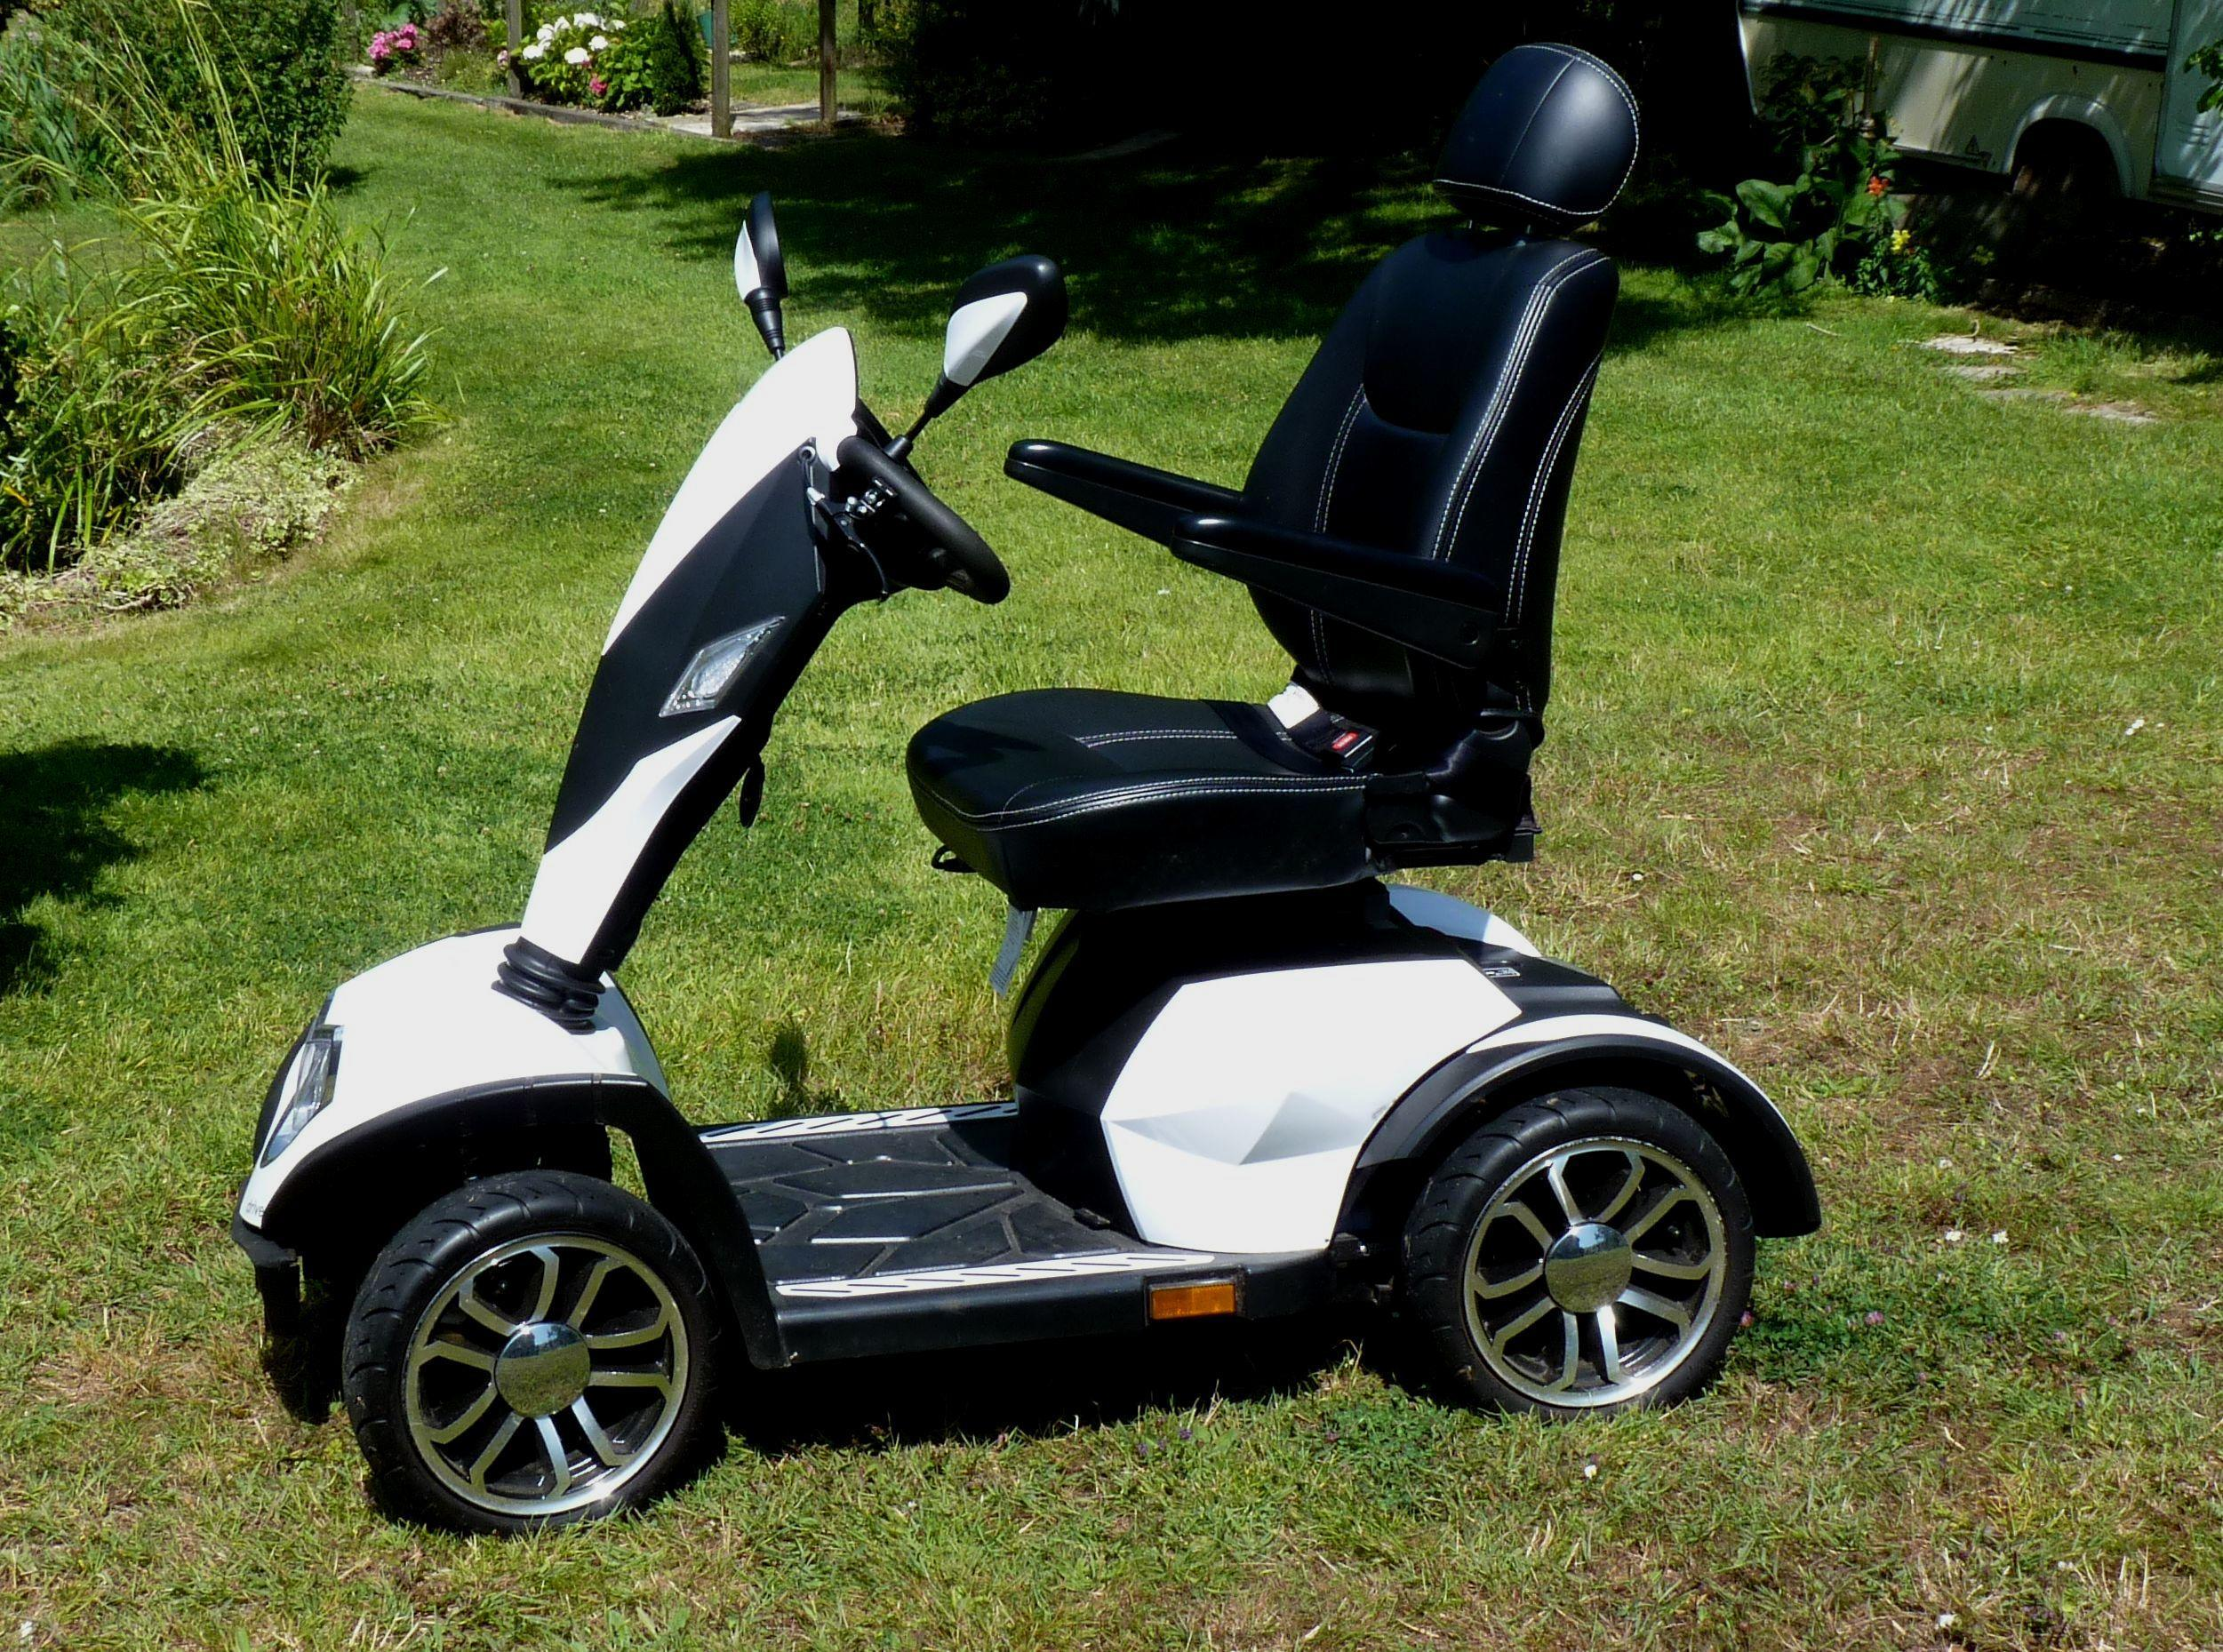 COBRA MOBILITY SCOOTER - IMMACULATE - Cowes | Wightbay